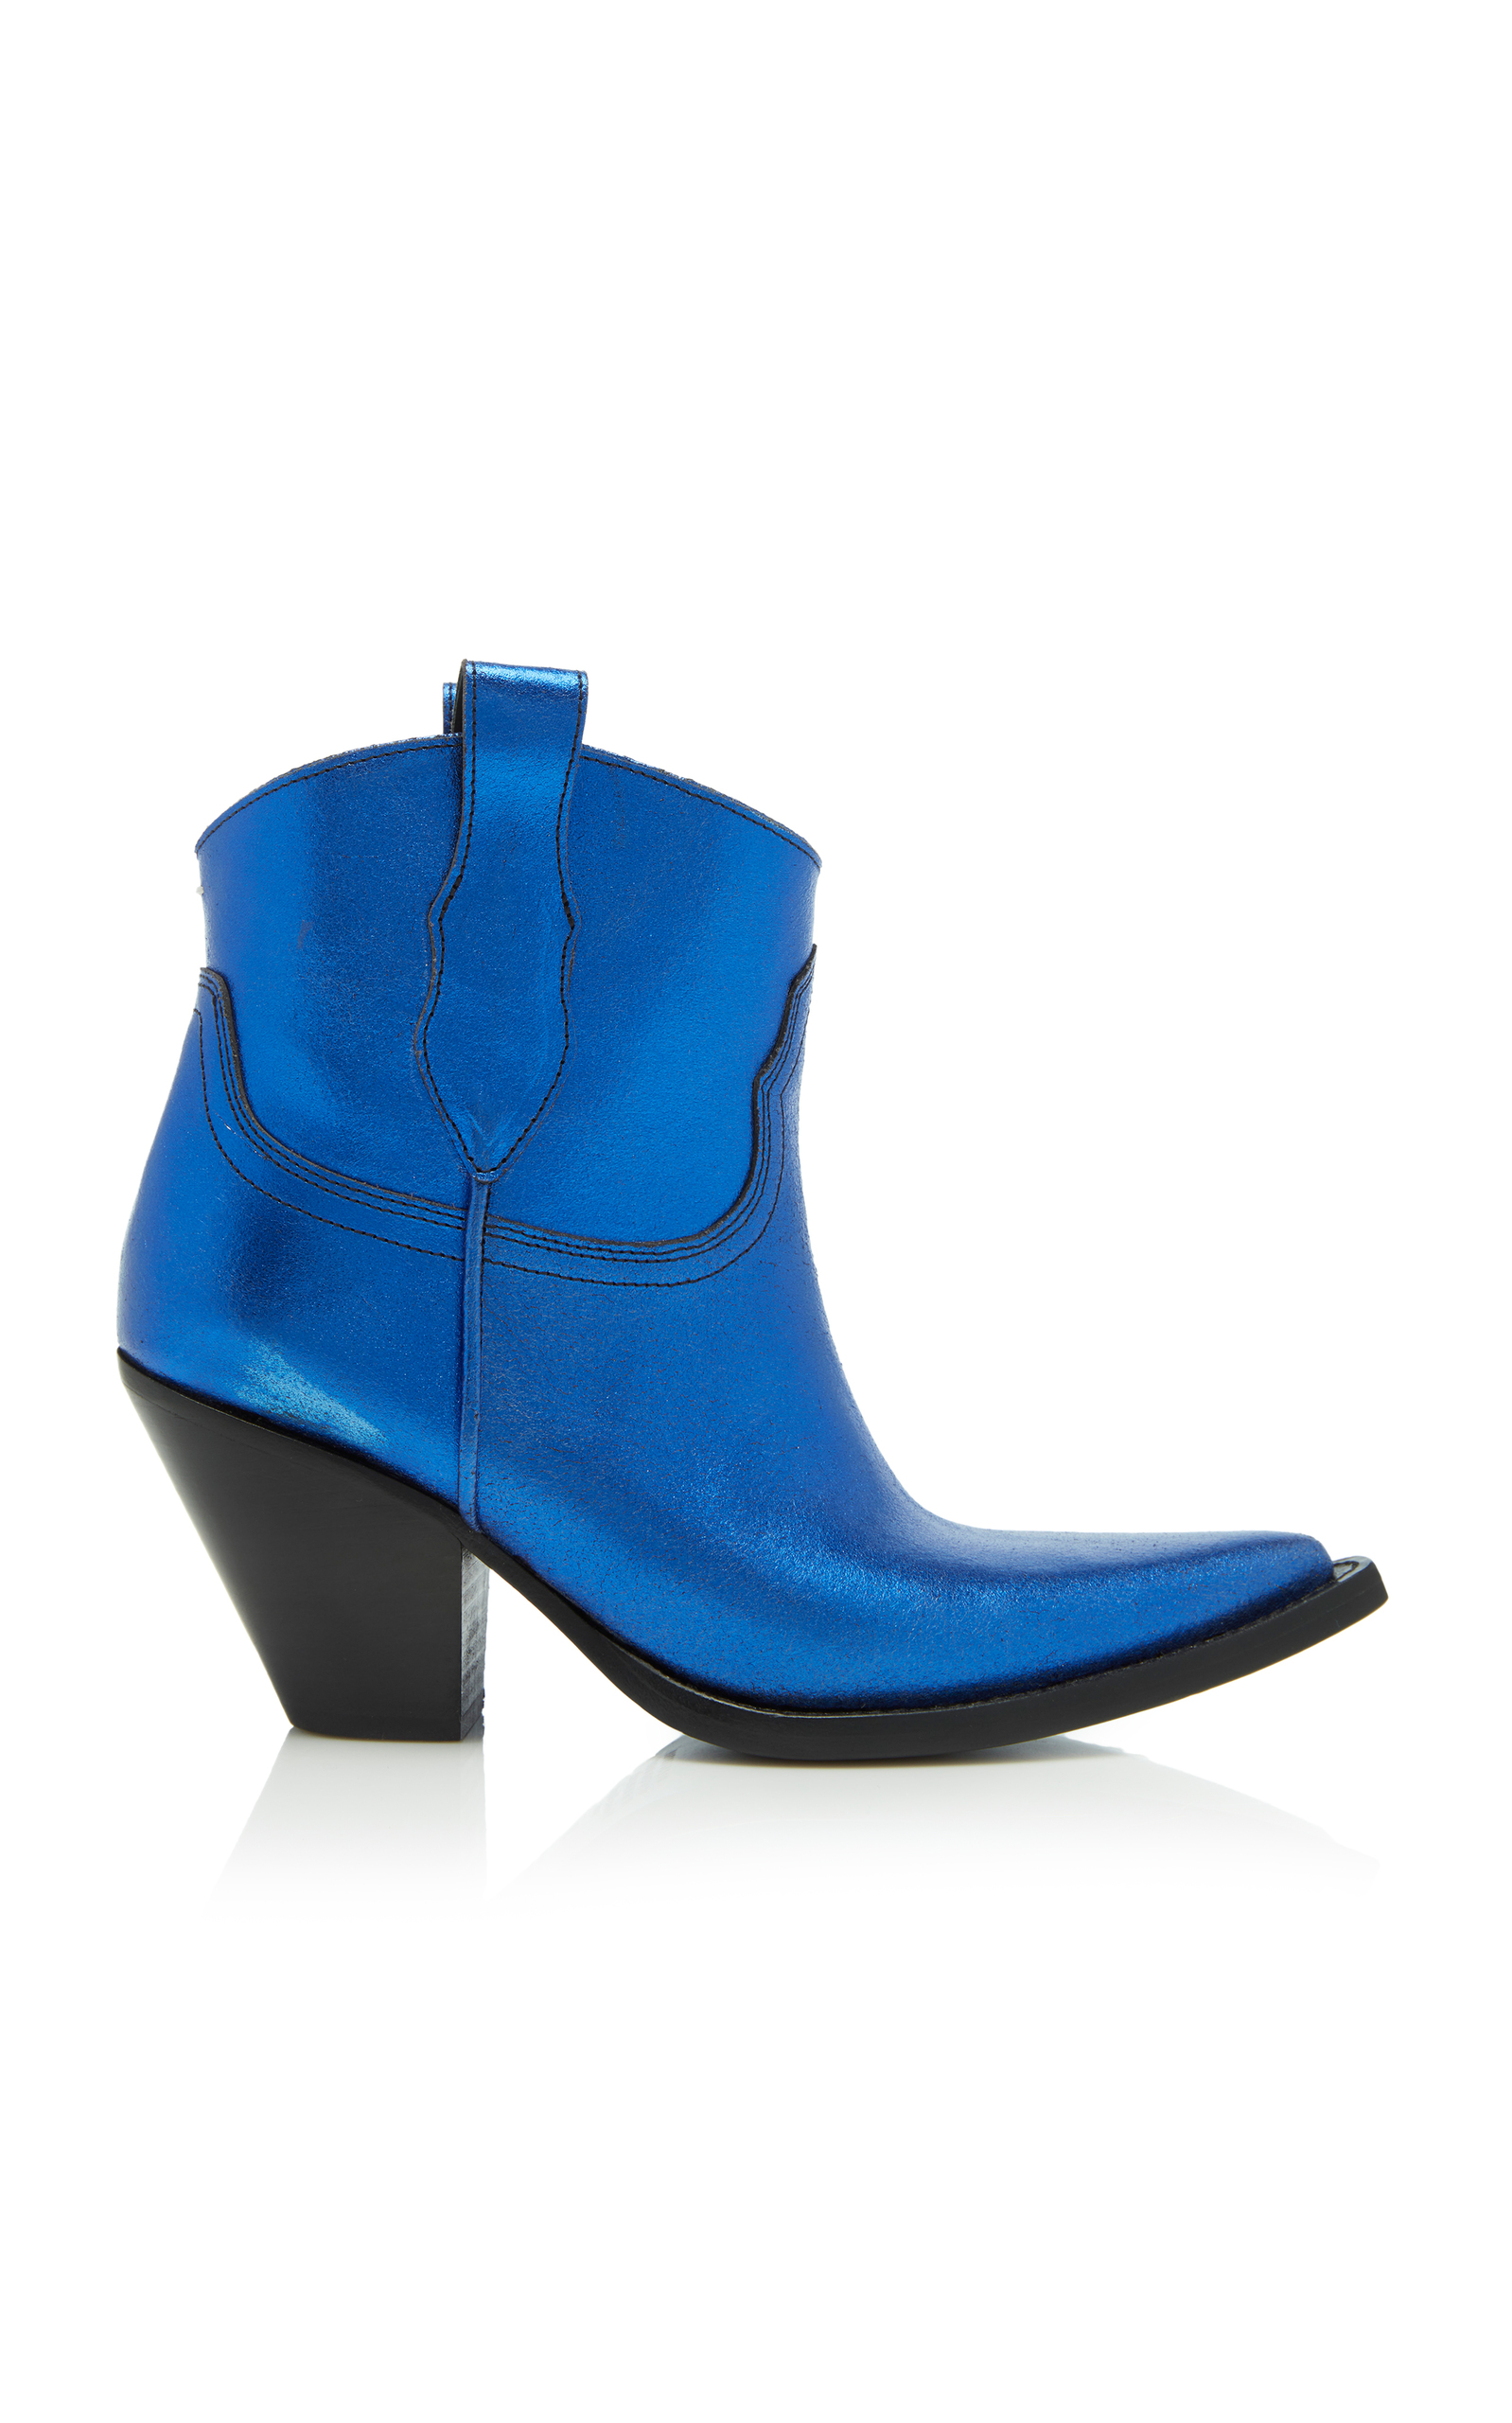 Maison Margiela Low Mexas Boots wB1guEOPD